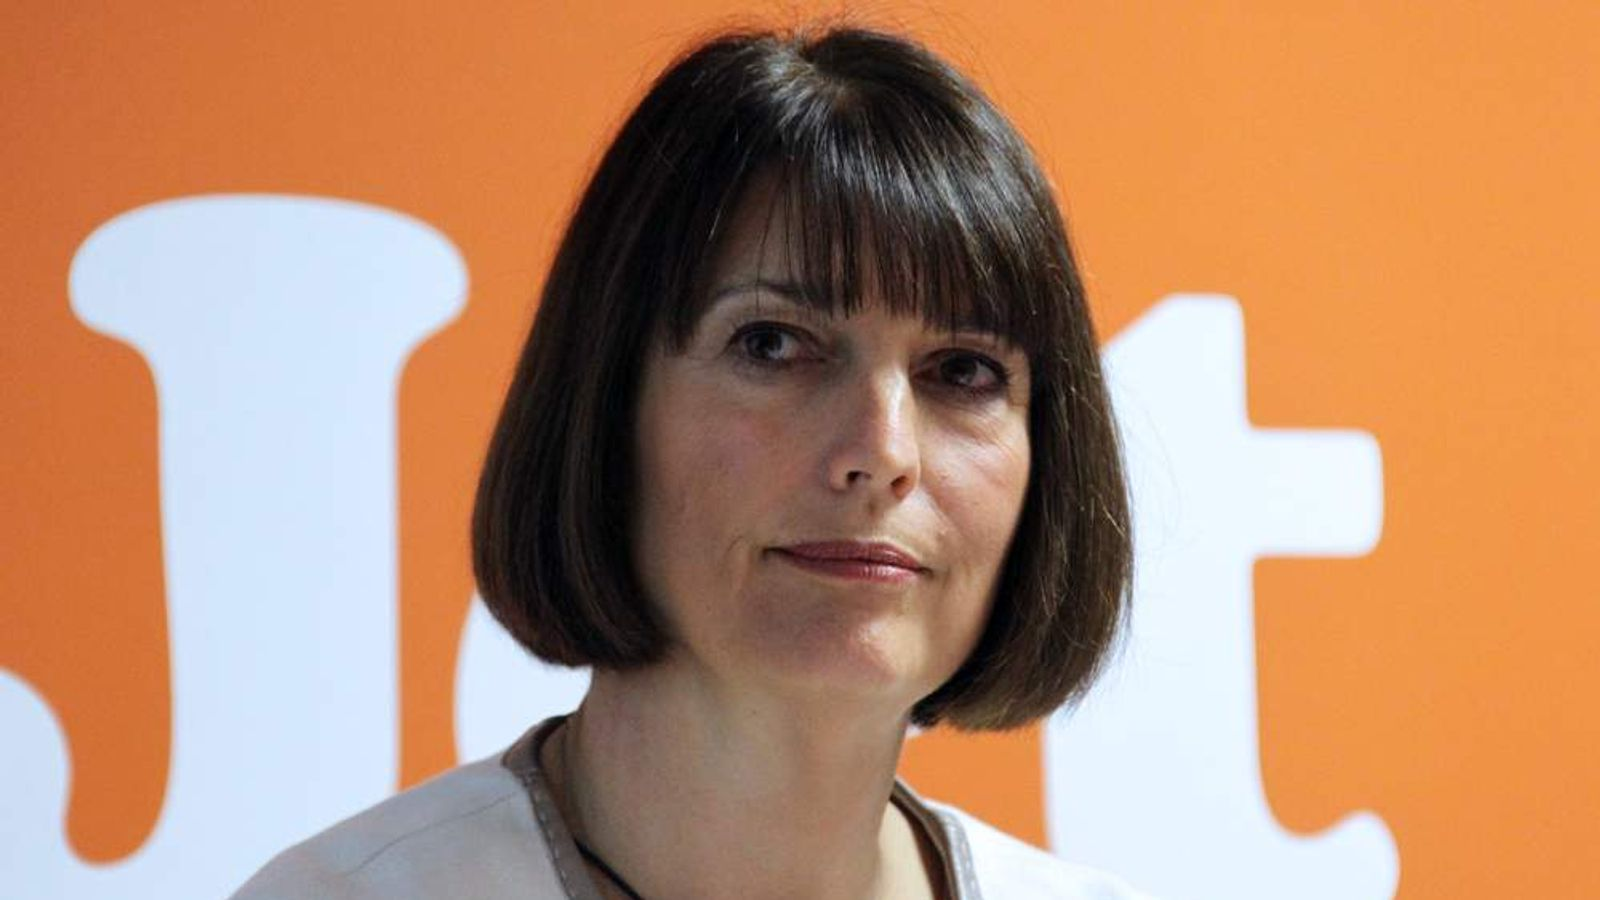 Carolyn McCall, CEO of British low-cost